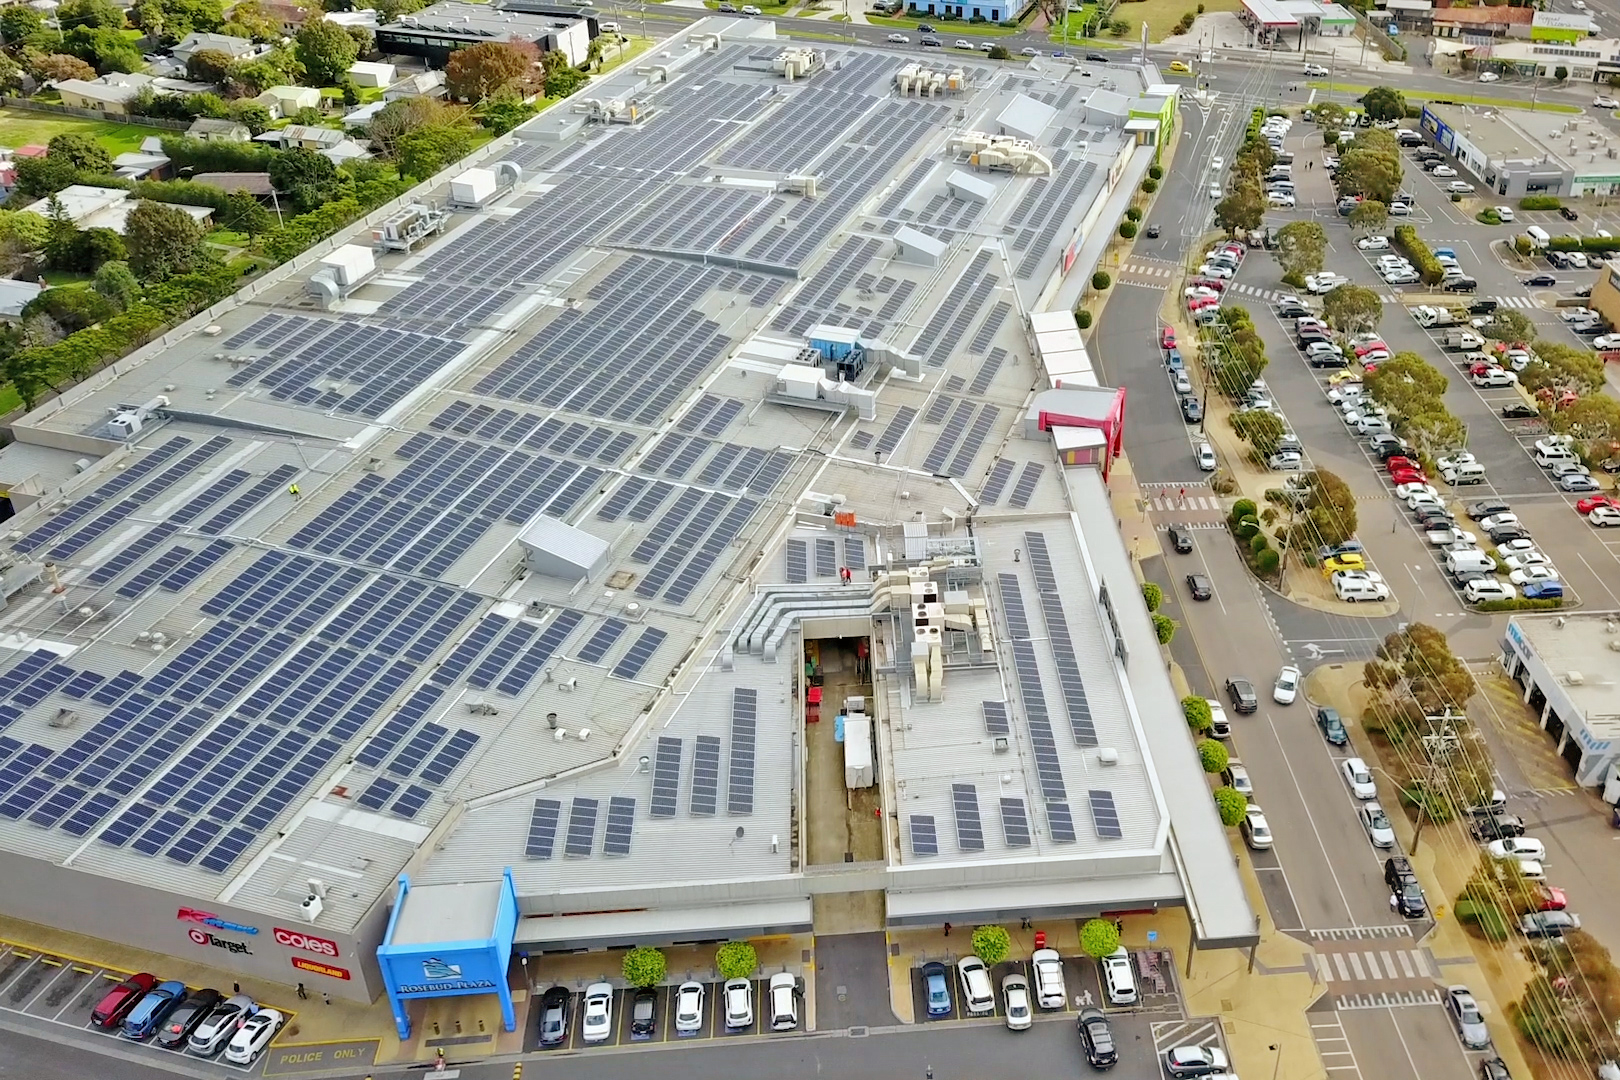 One of Victoria's biggest solar tilt array projects